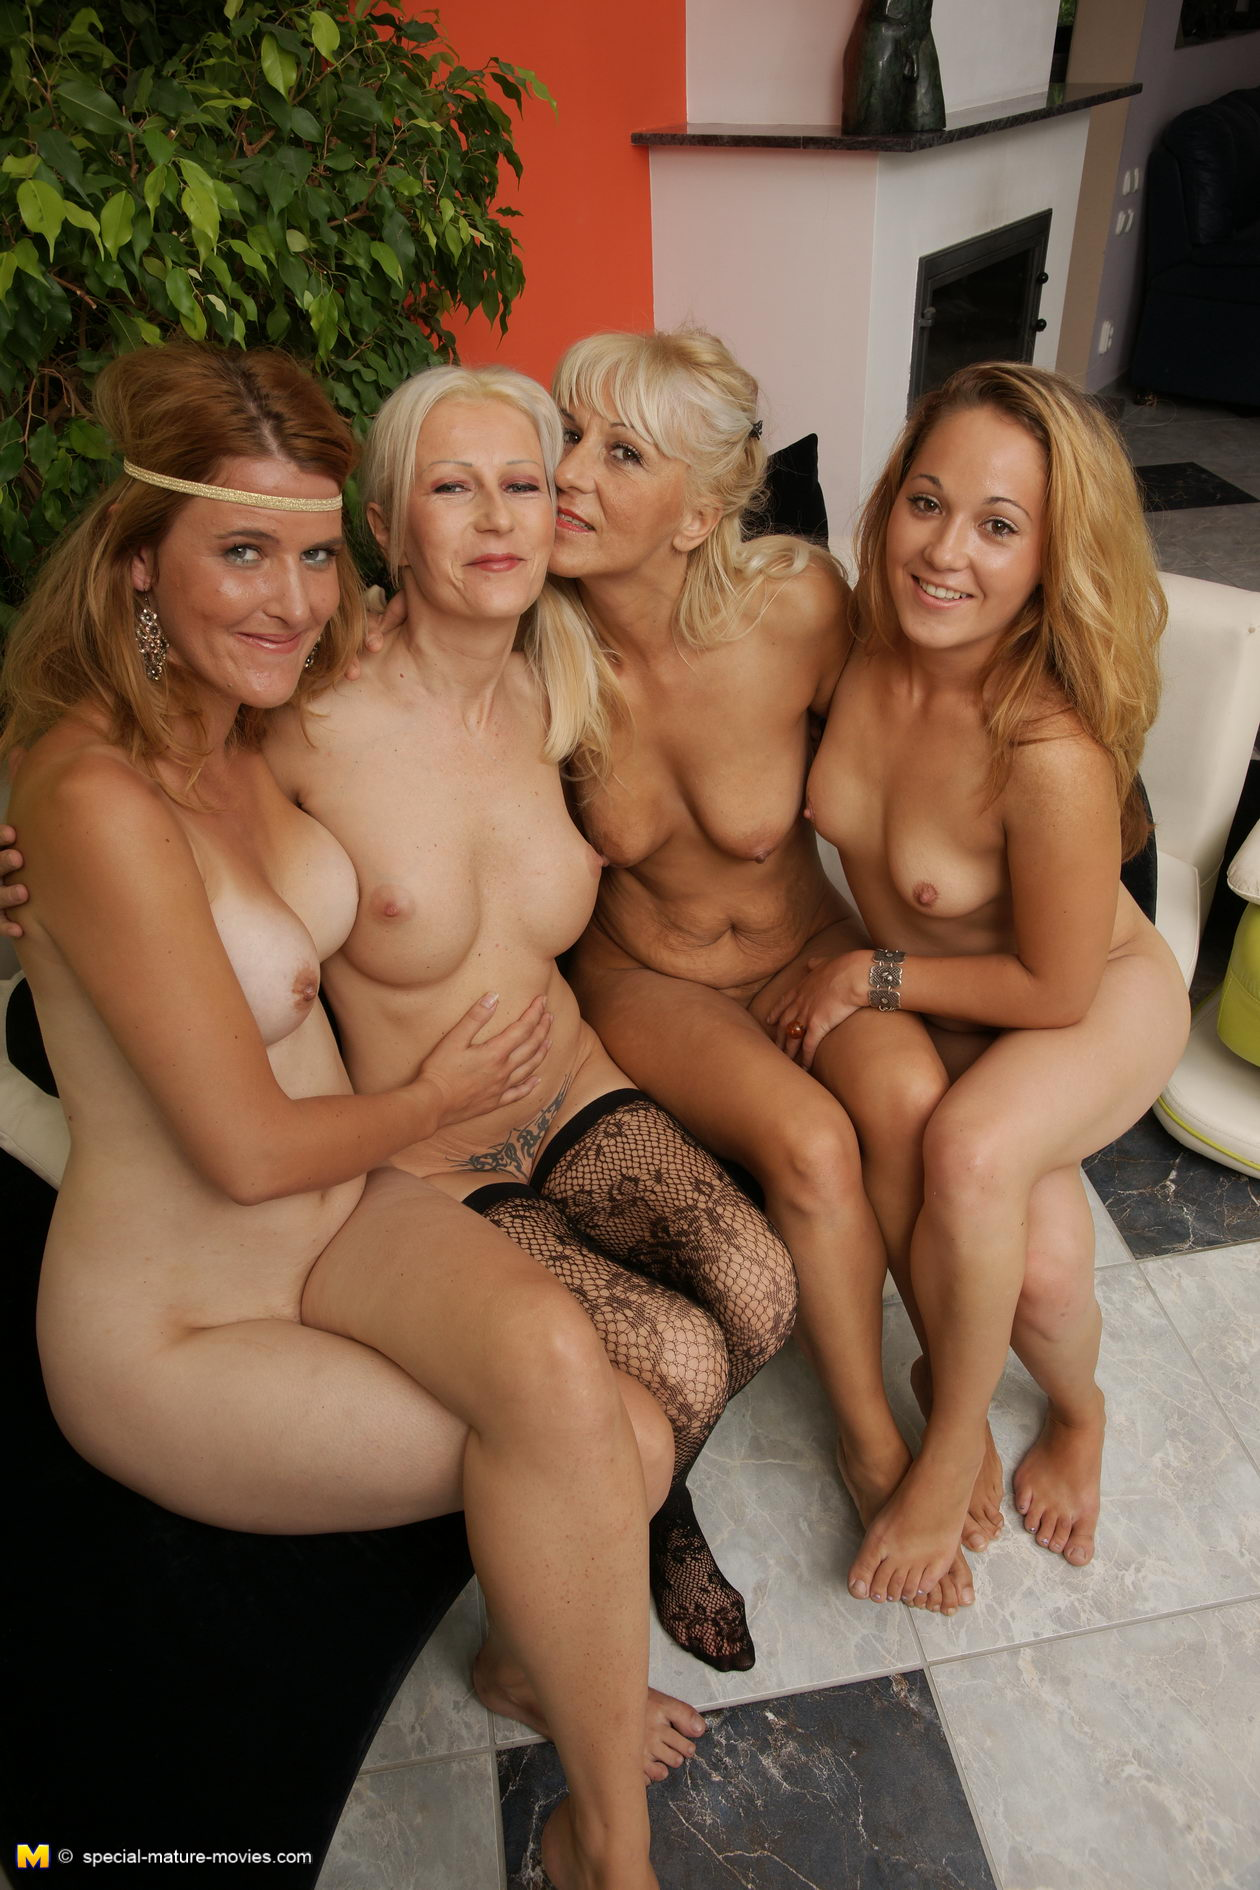 free-lesbian-groups-sex-movies-real-squirters-porn-artwork